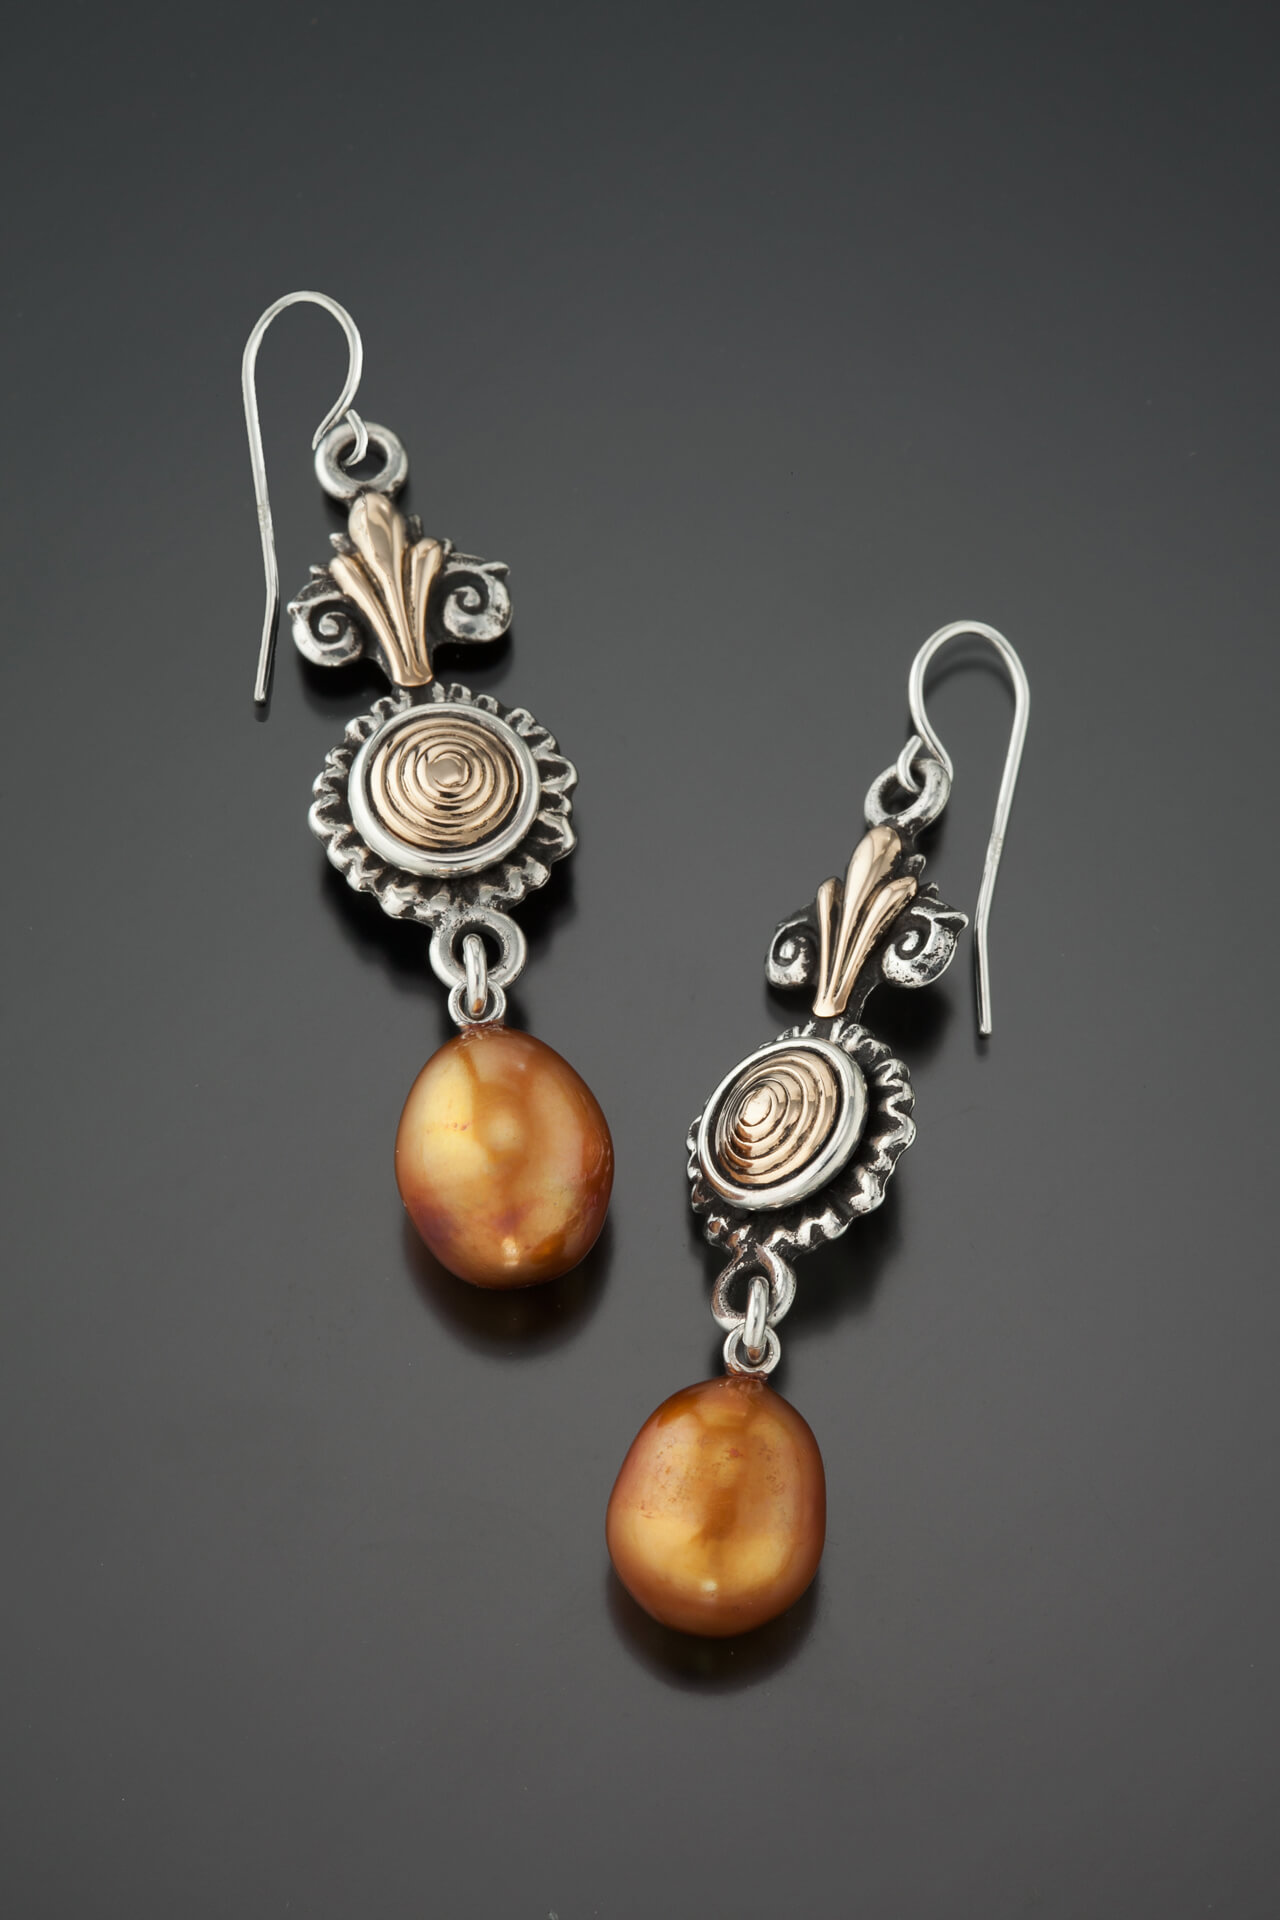 Steve Stamas Designs, handcrafted sterling silver jewelry, Woodstock-new paltz art & crafts fair